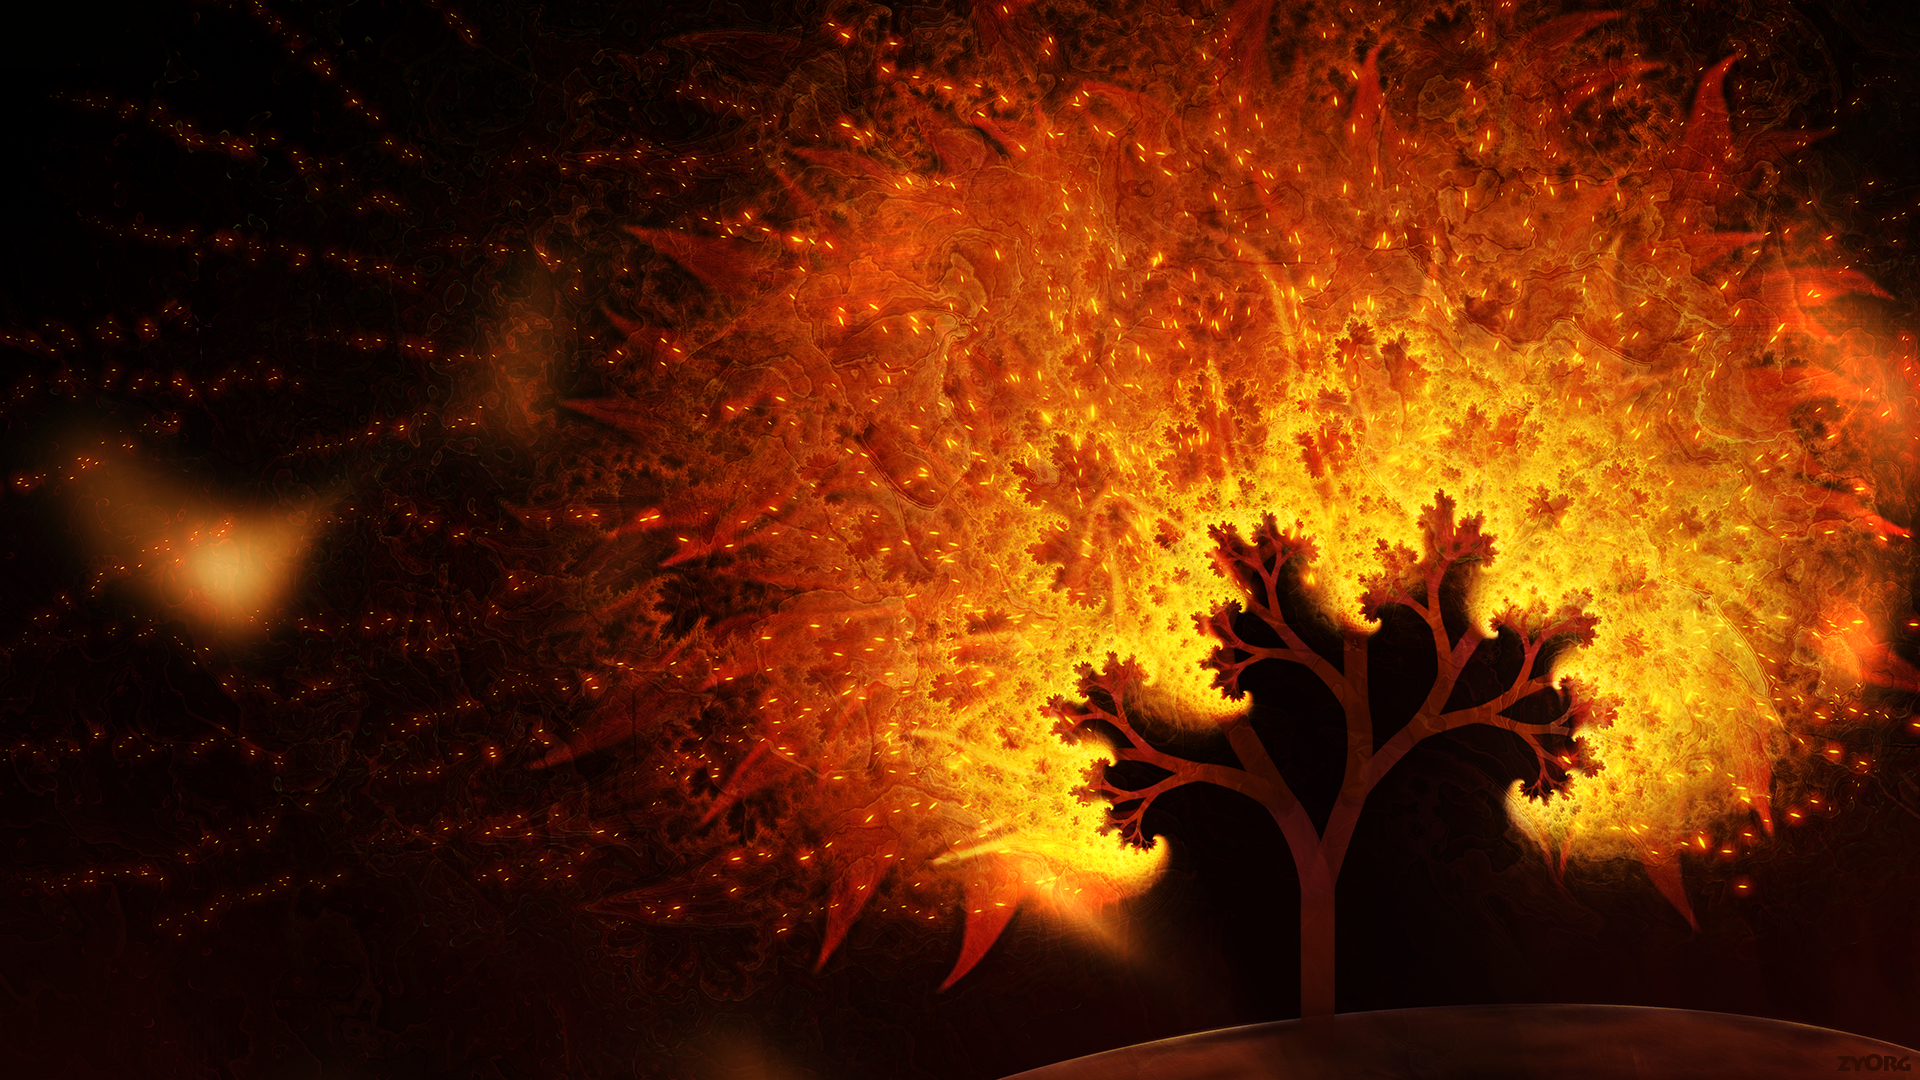 abstract tree hd wallpapers - photo #17